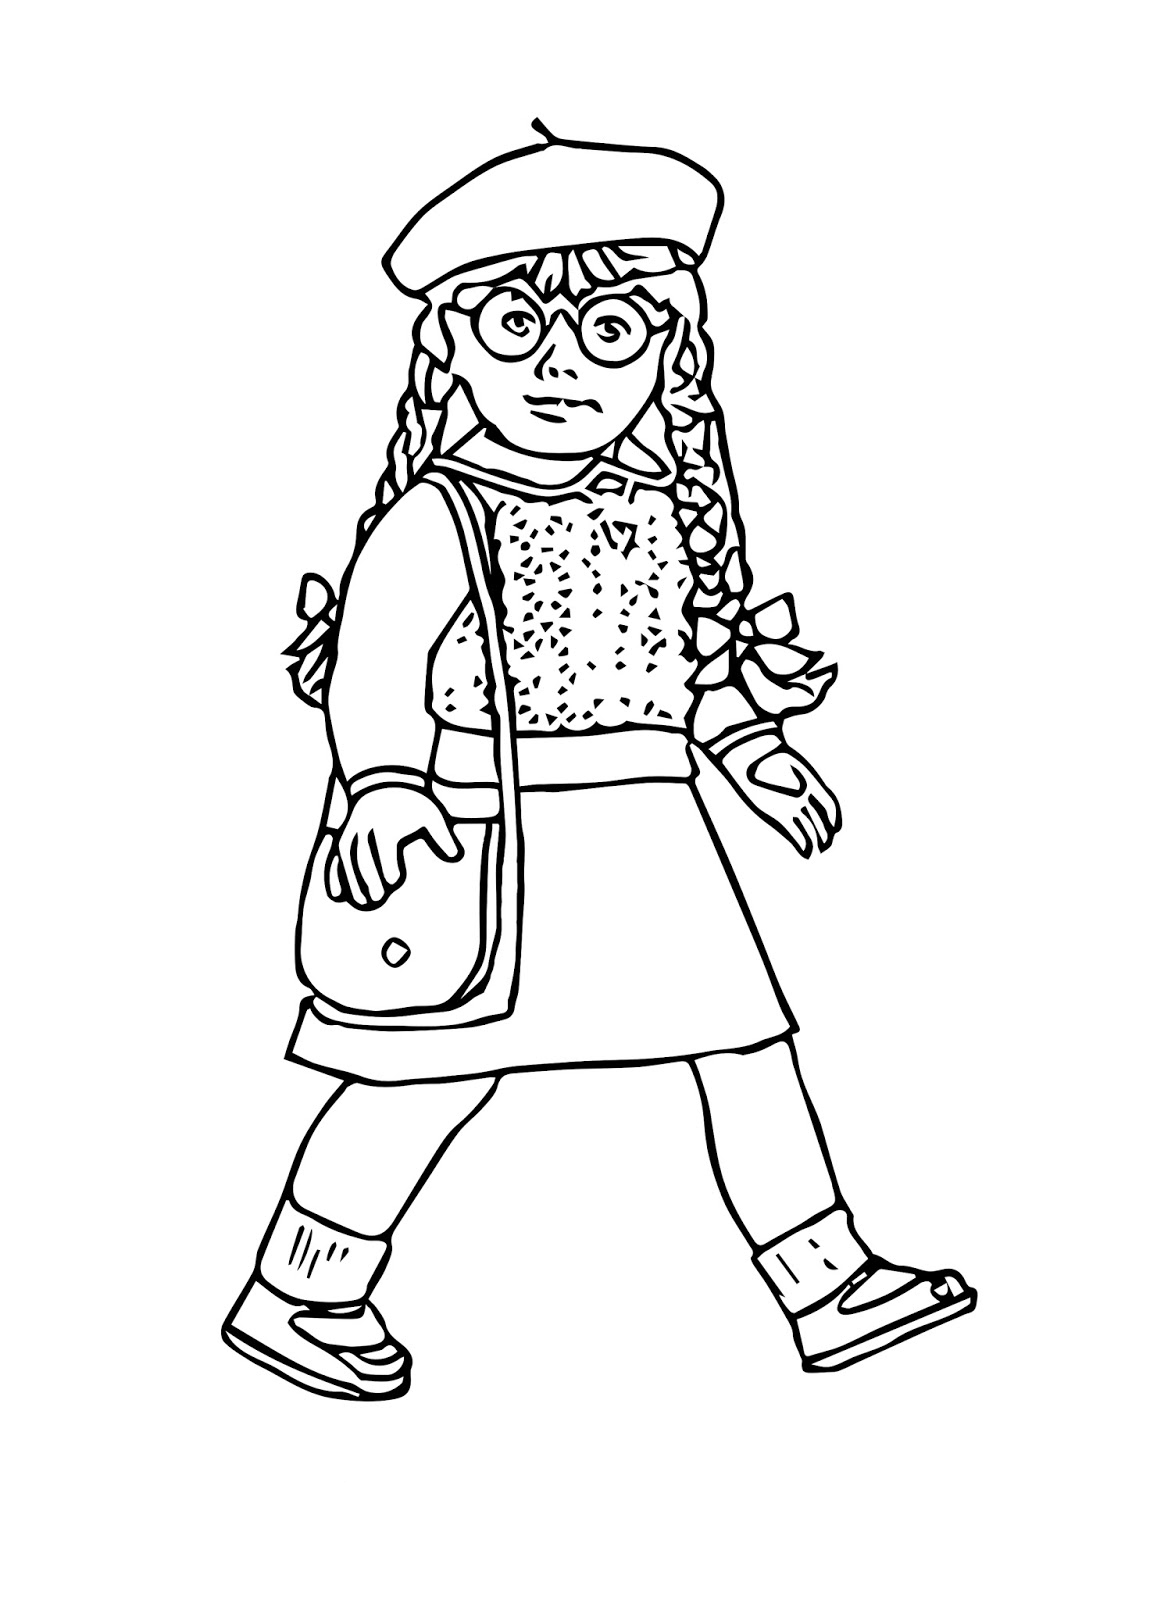 - American Girl Coloring Pages - Best Coloring Pages For Kids